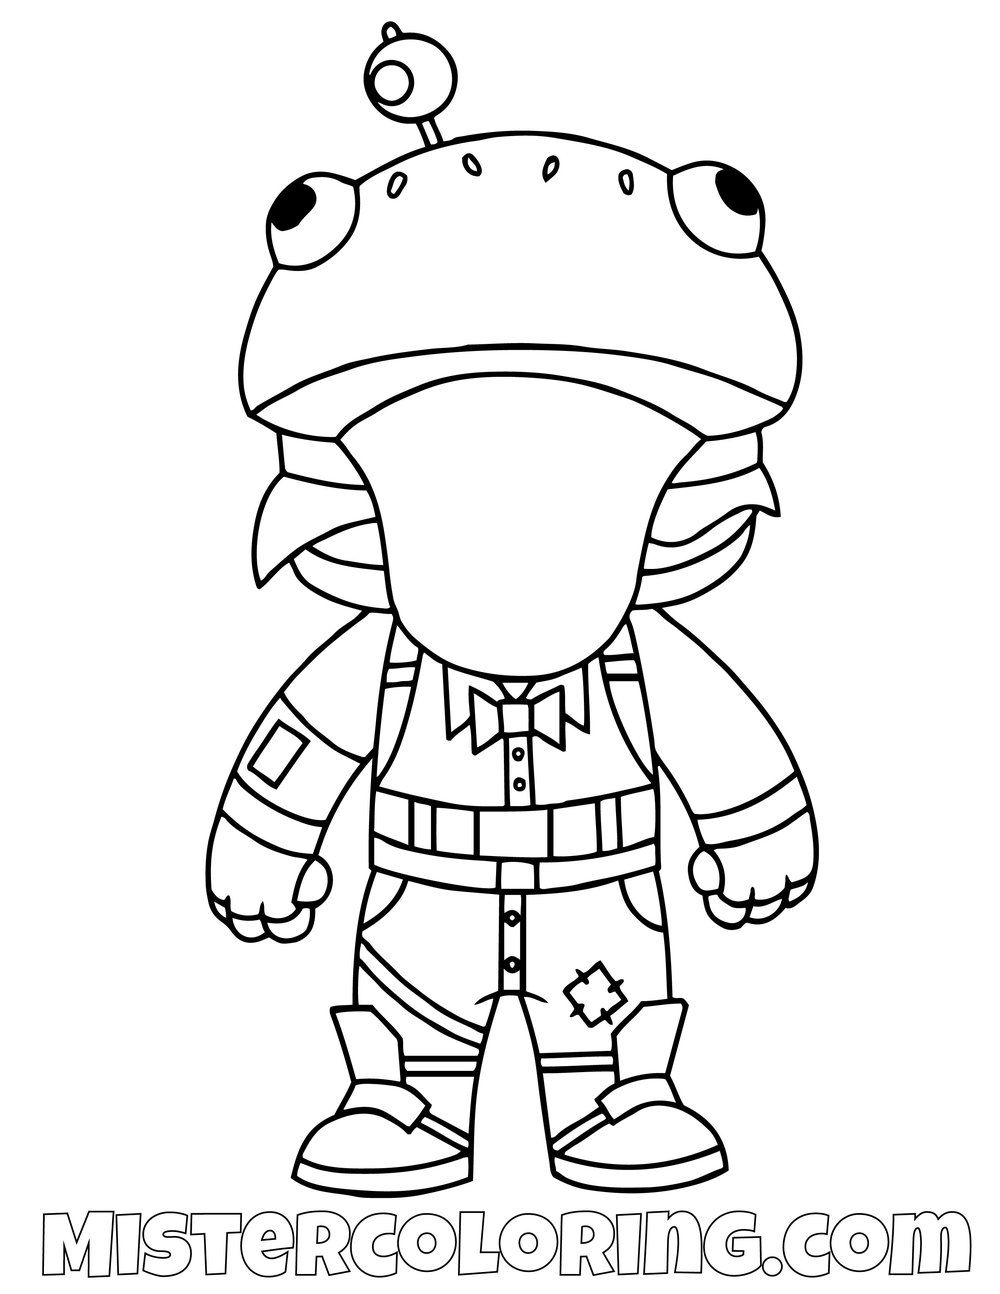 Free Durr Burger Chibi Skin Fortnite Coloring Page For Kids